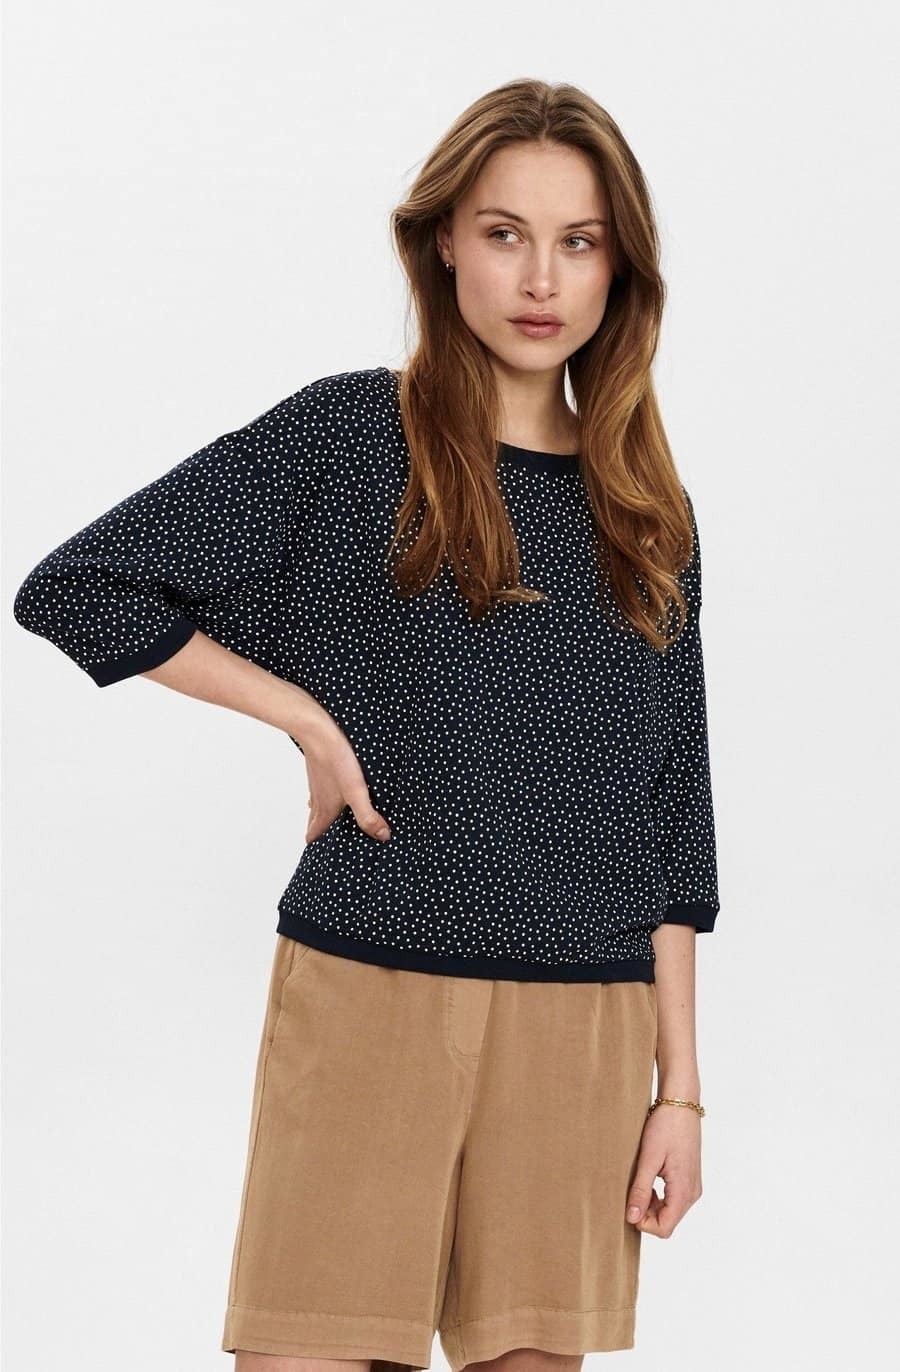 Nümph Brighed blouse - donkerblauw